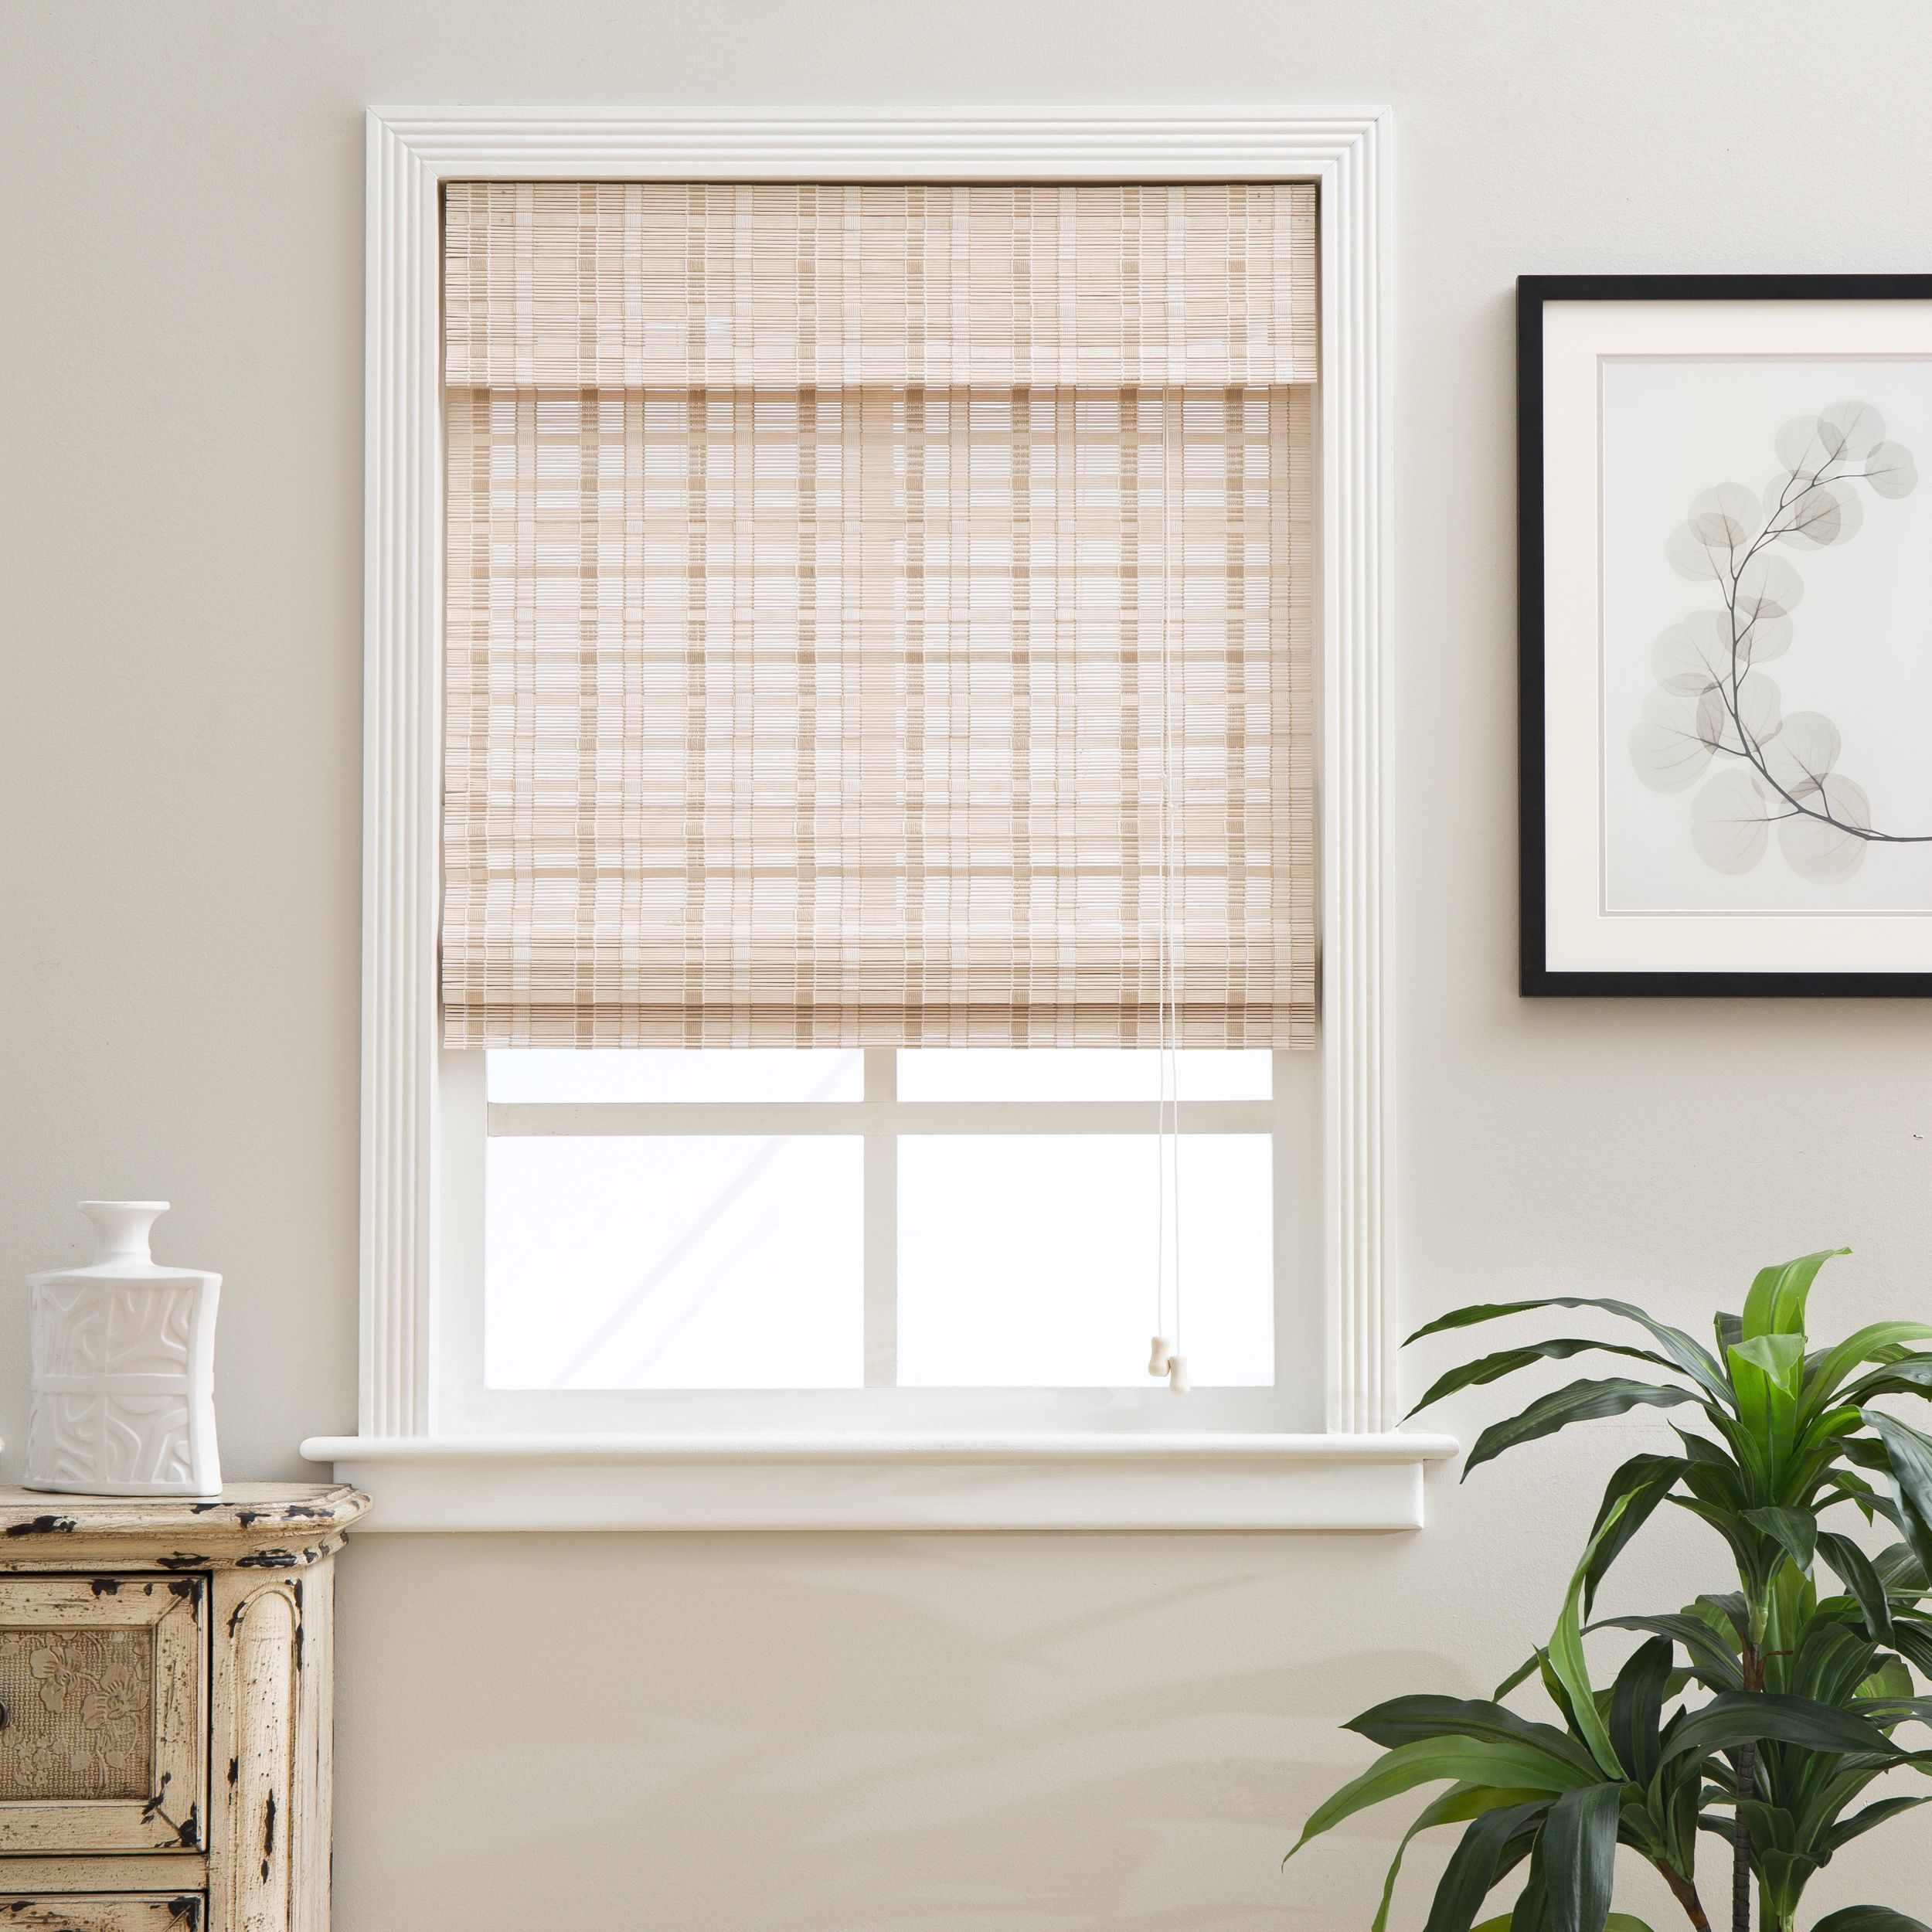 Bamboo Blinds Add A Stylish Twist To Needed Window Treatments The